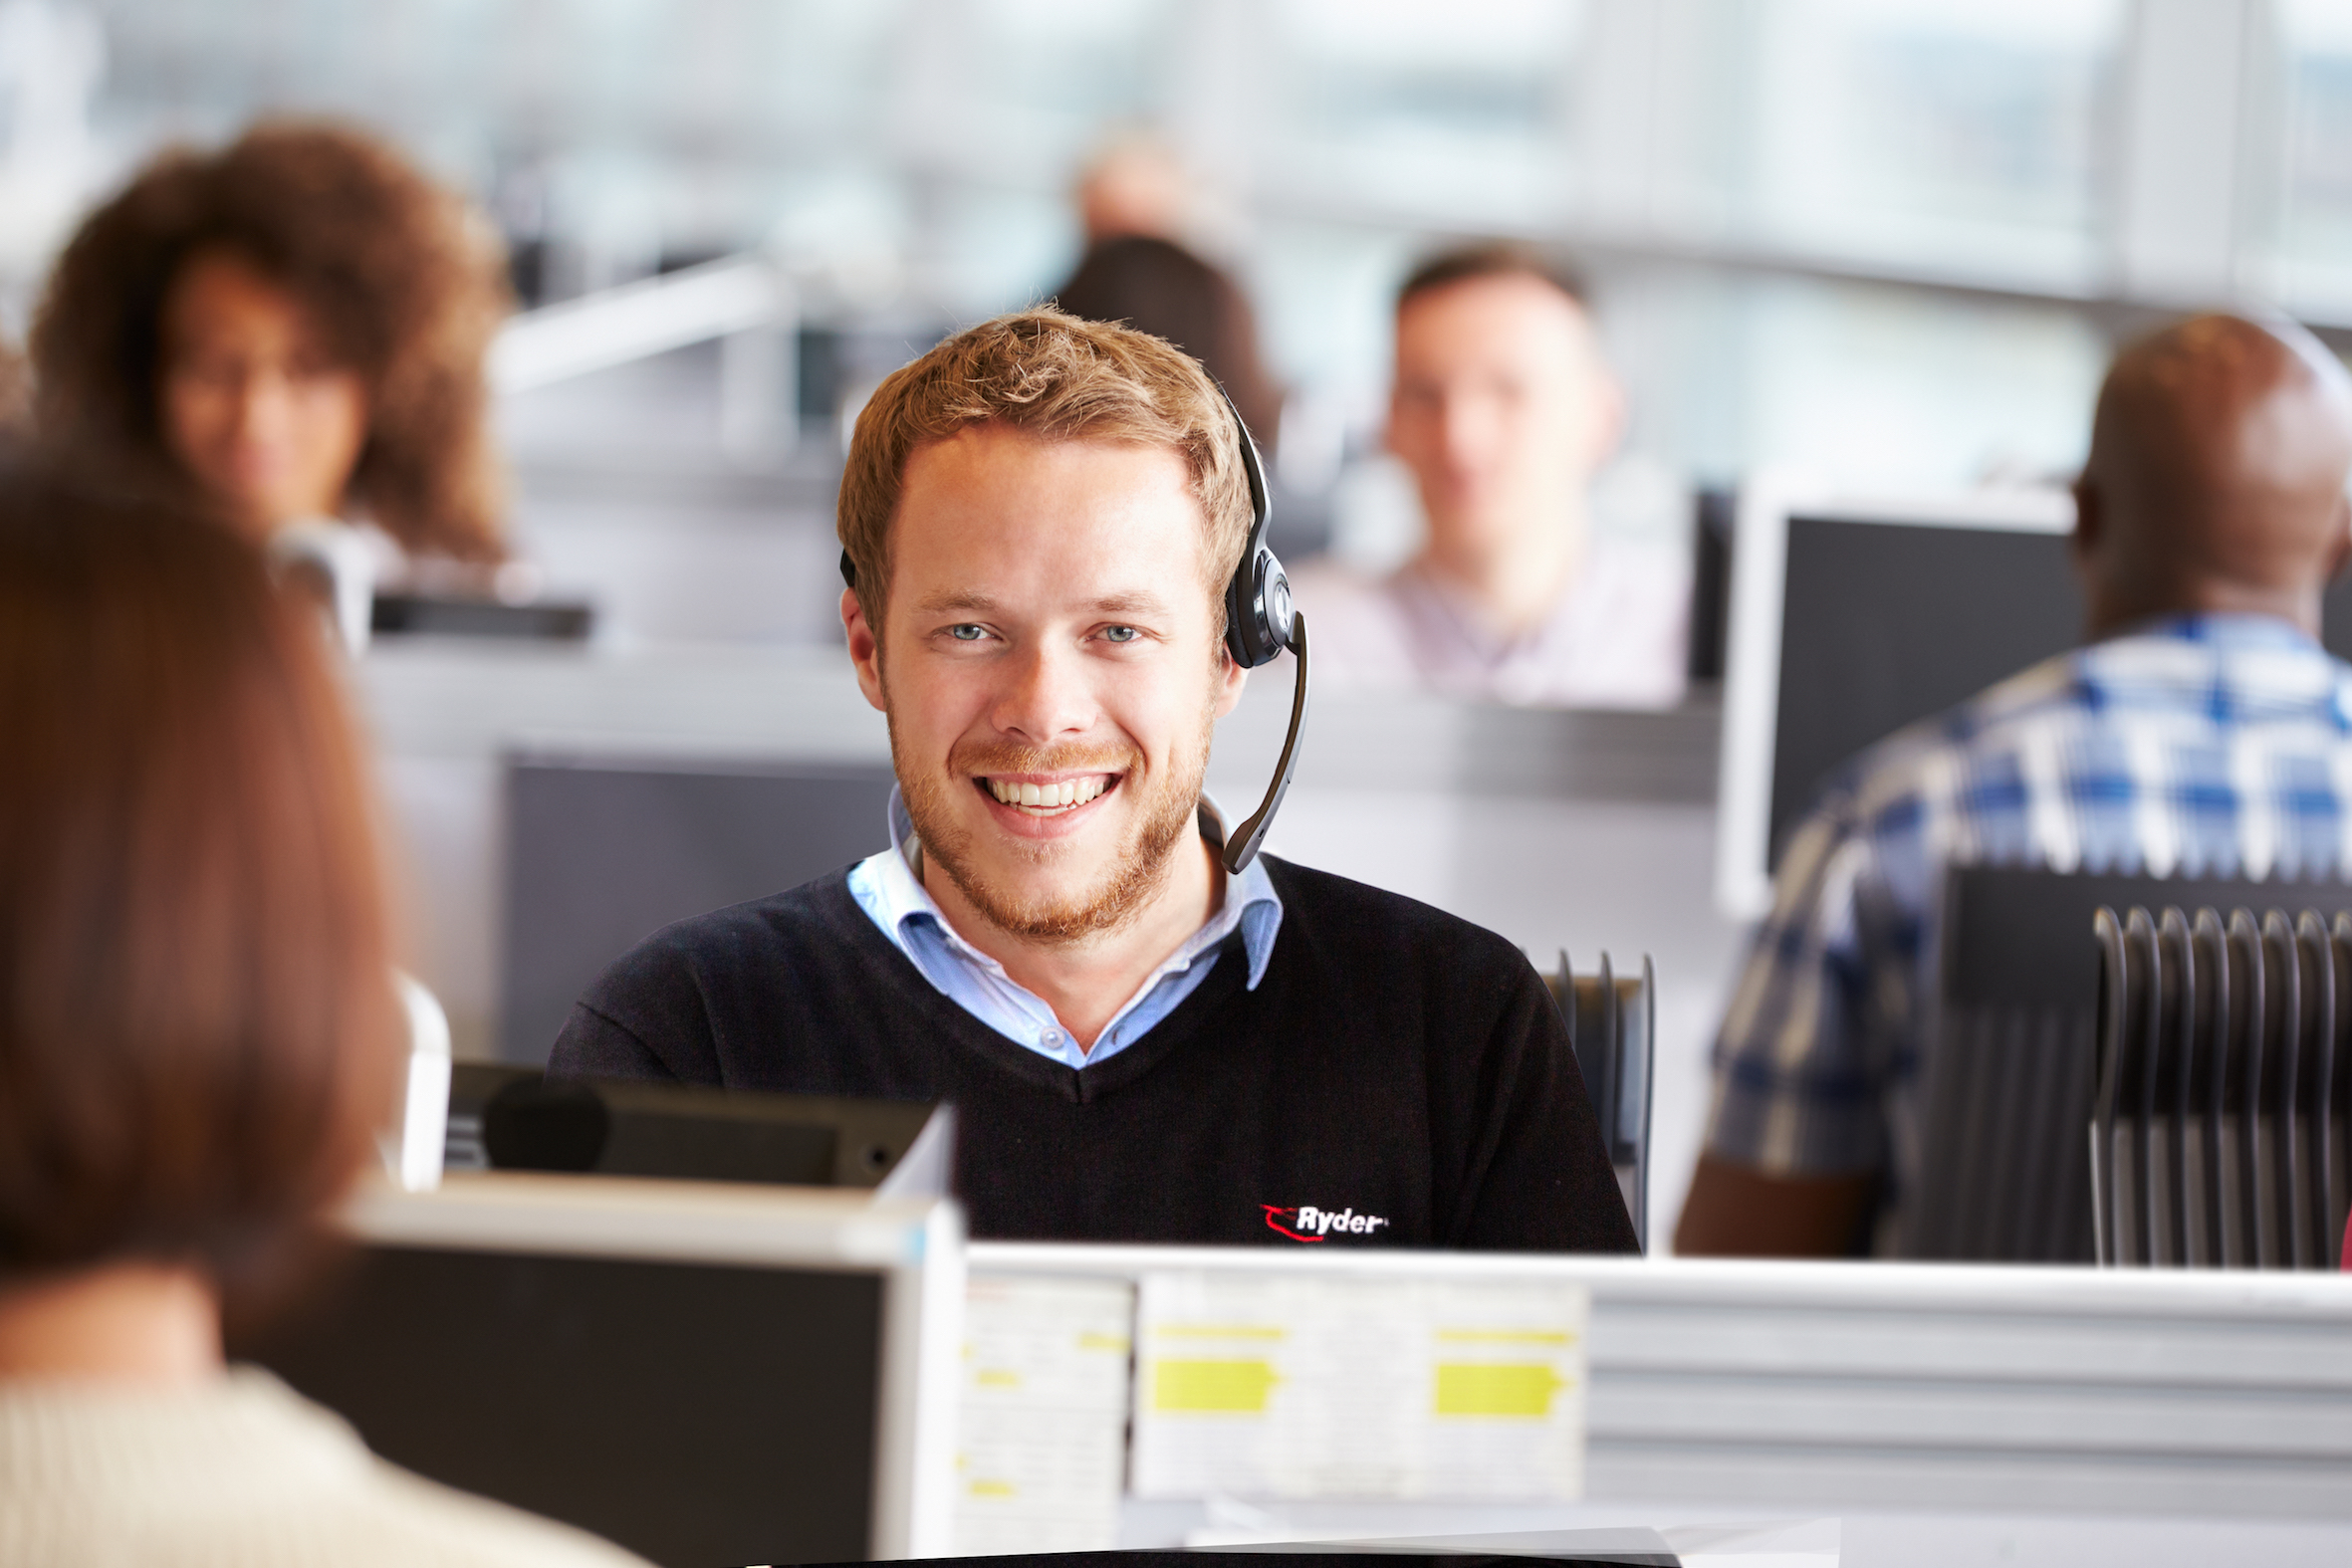 A Ryder engineer on the phone with FleetCare customers